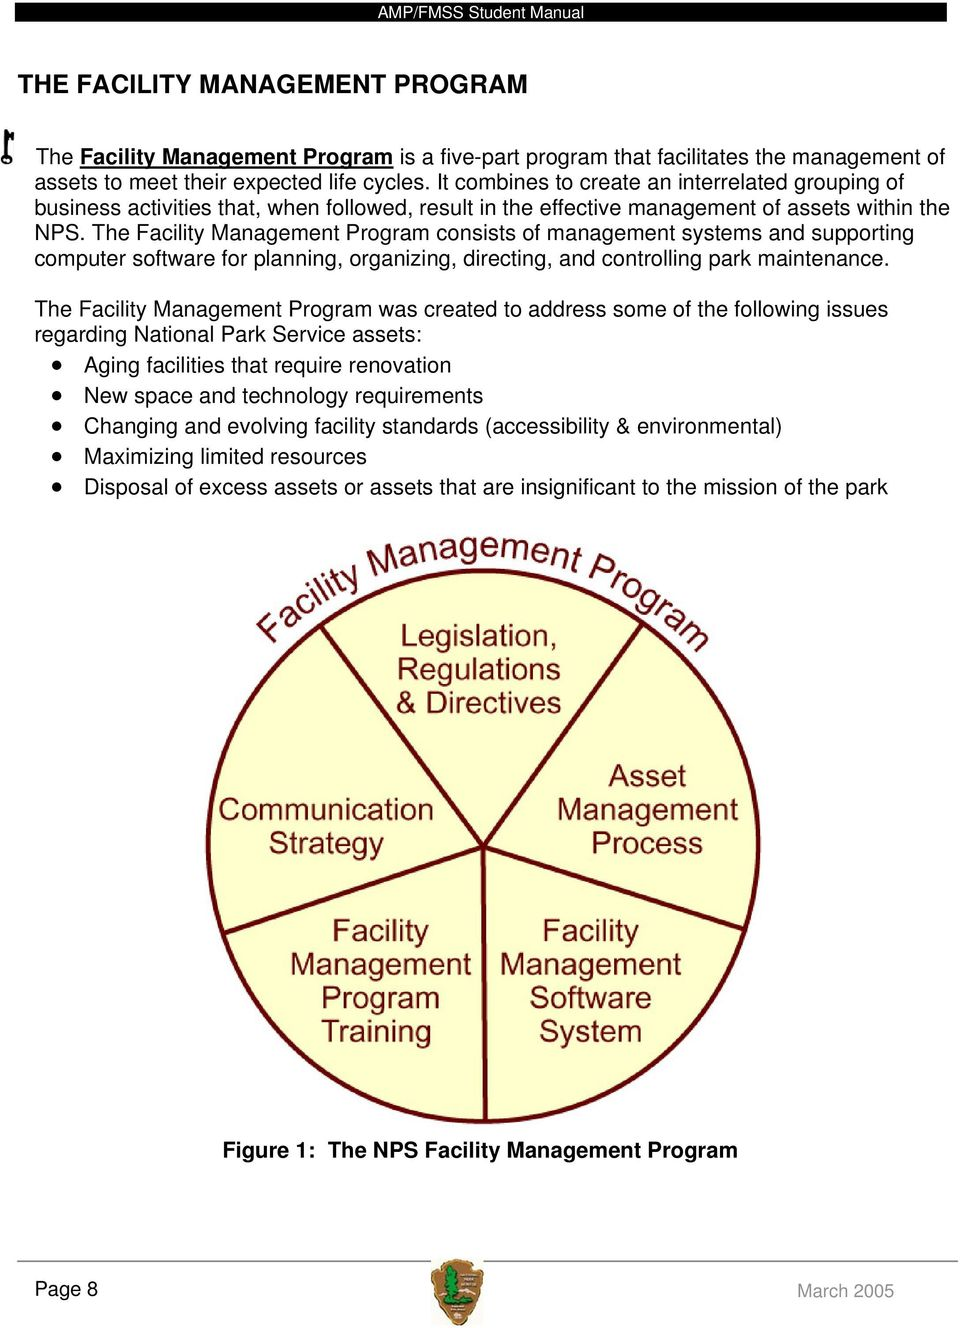 The Facility Management Program consists of management systems and supporting computer software for planning, organizing, directing, and controlling park maintenance.